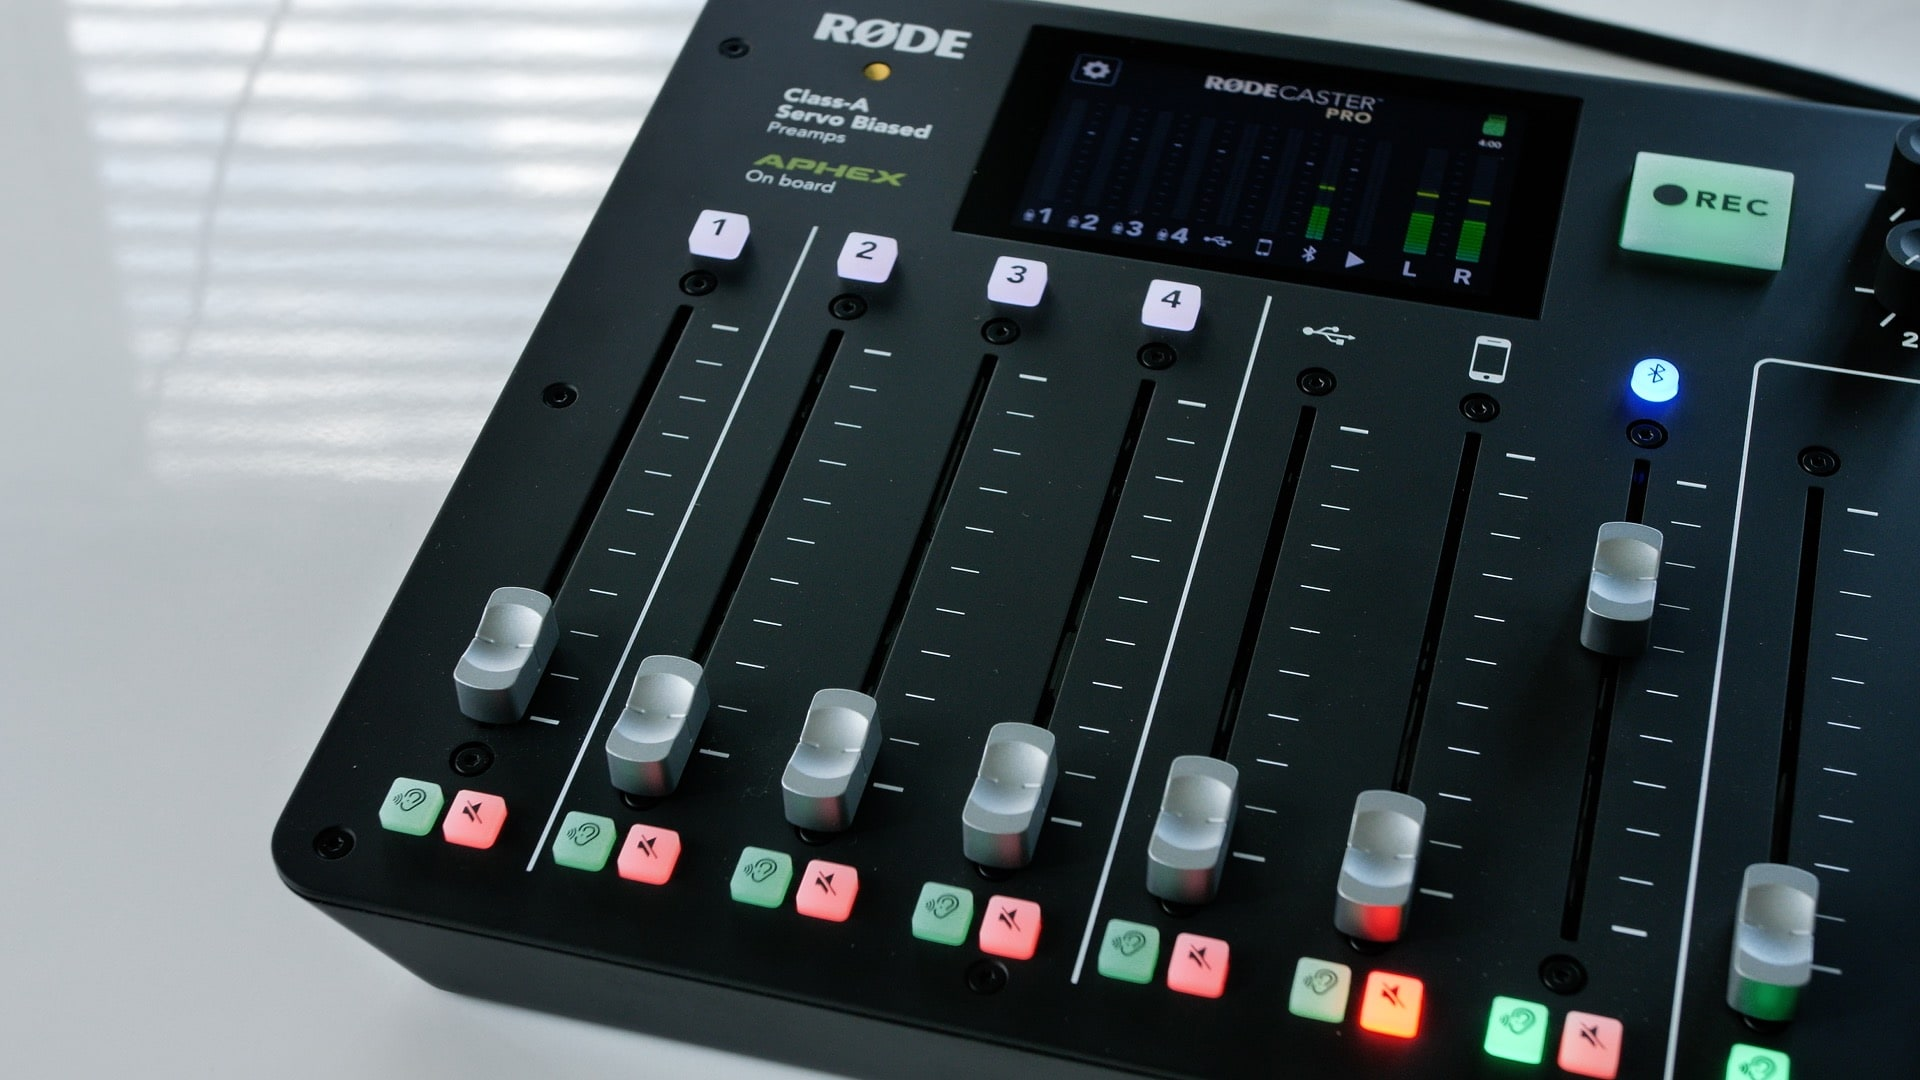 I've spent seven years testing podcasting gear. Here are my current favorites, including the RodeCaster Pro. Plus, get some bonus podcasting tips.